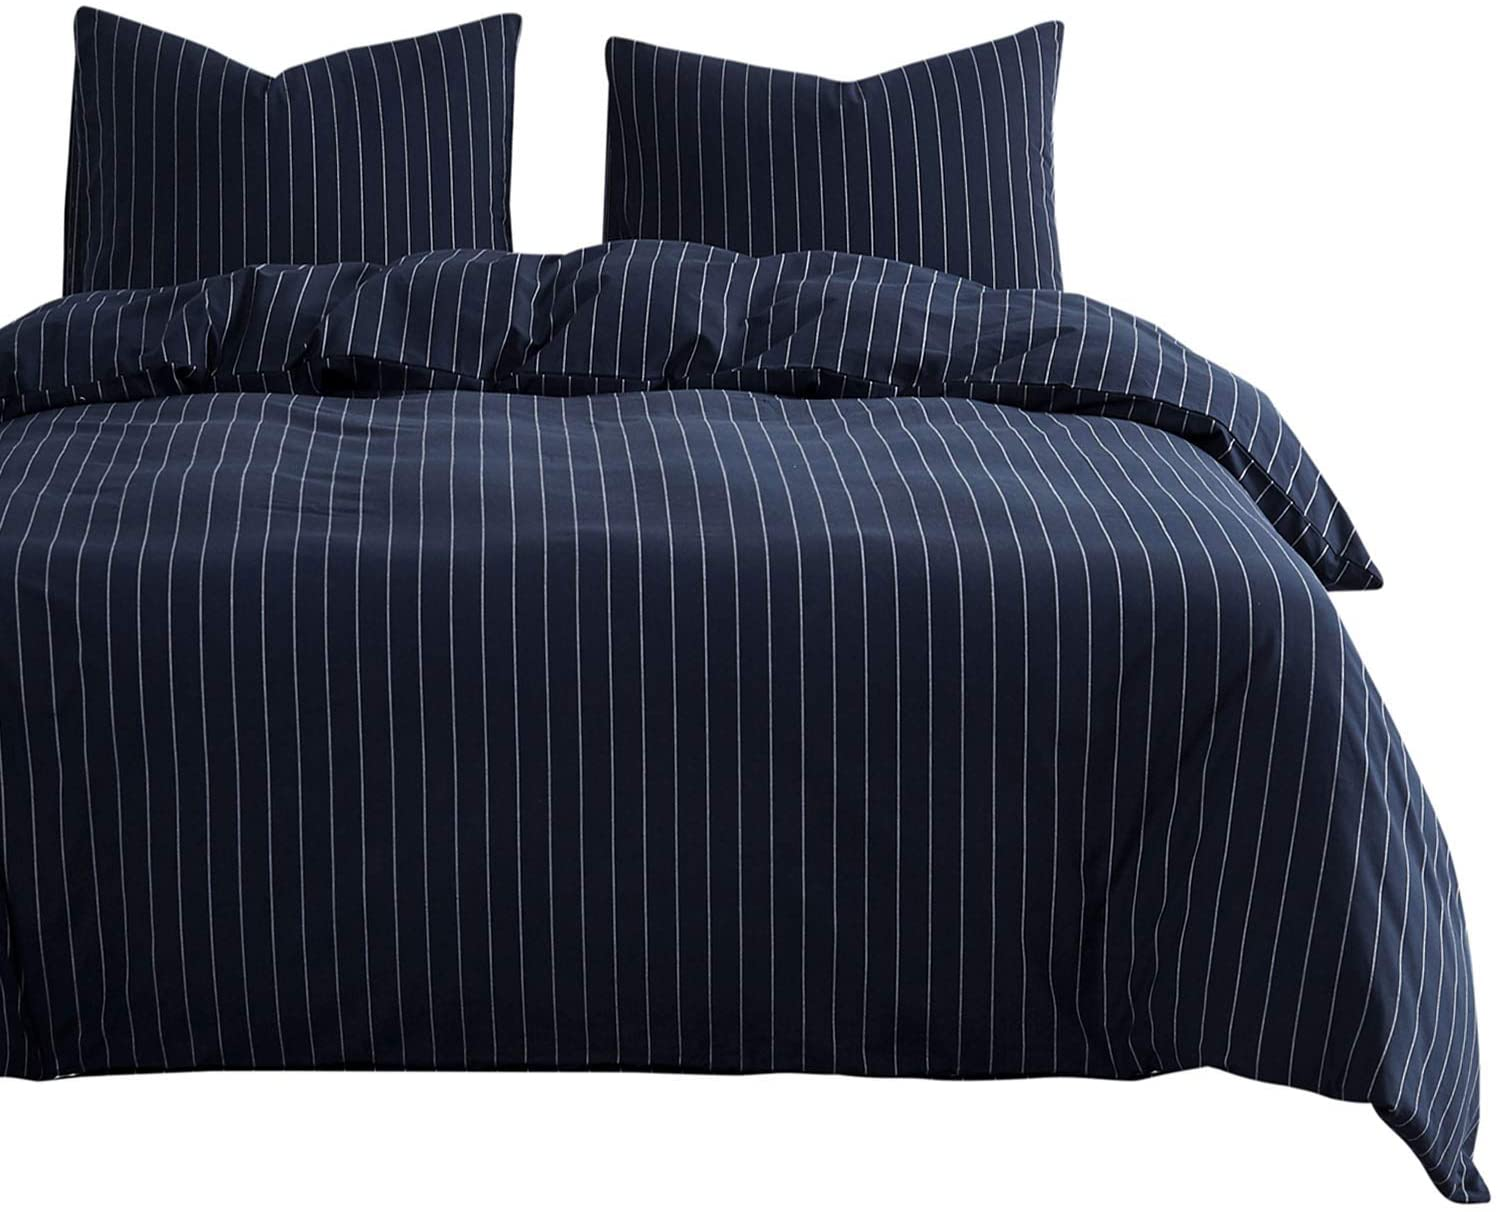 Wake In Cloud - Navy Striped Duvet Cover Set, 100% Cotton Bedding, White Vertical Ticking Stripes Pattern on Navy Blue, Zipper Closure (3pcs, King Size)